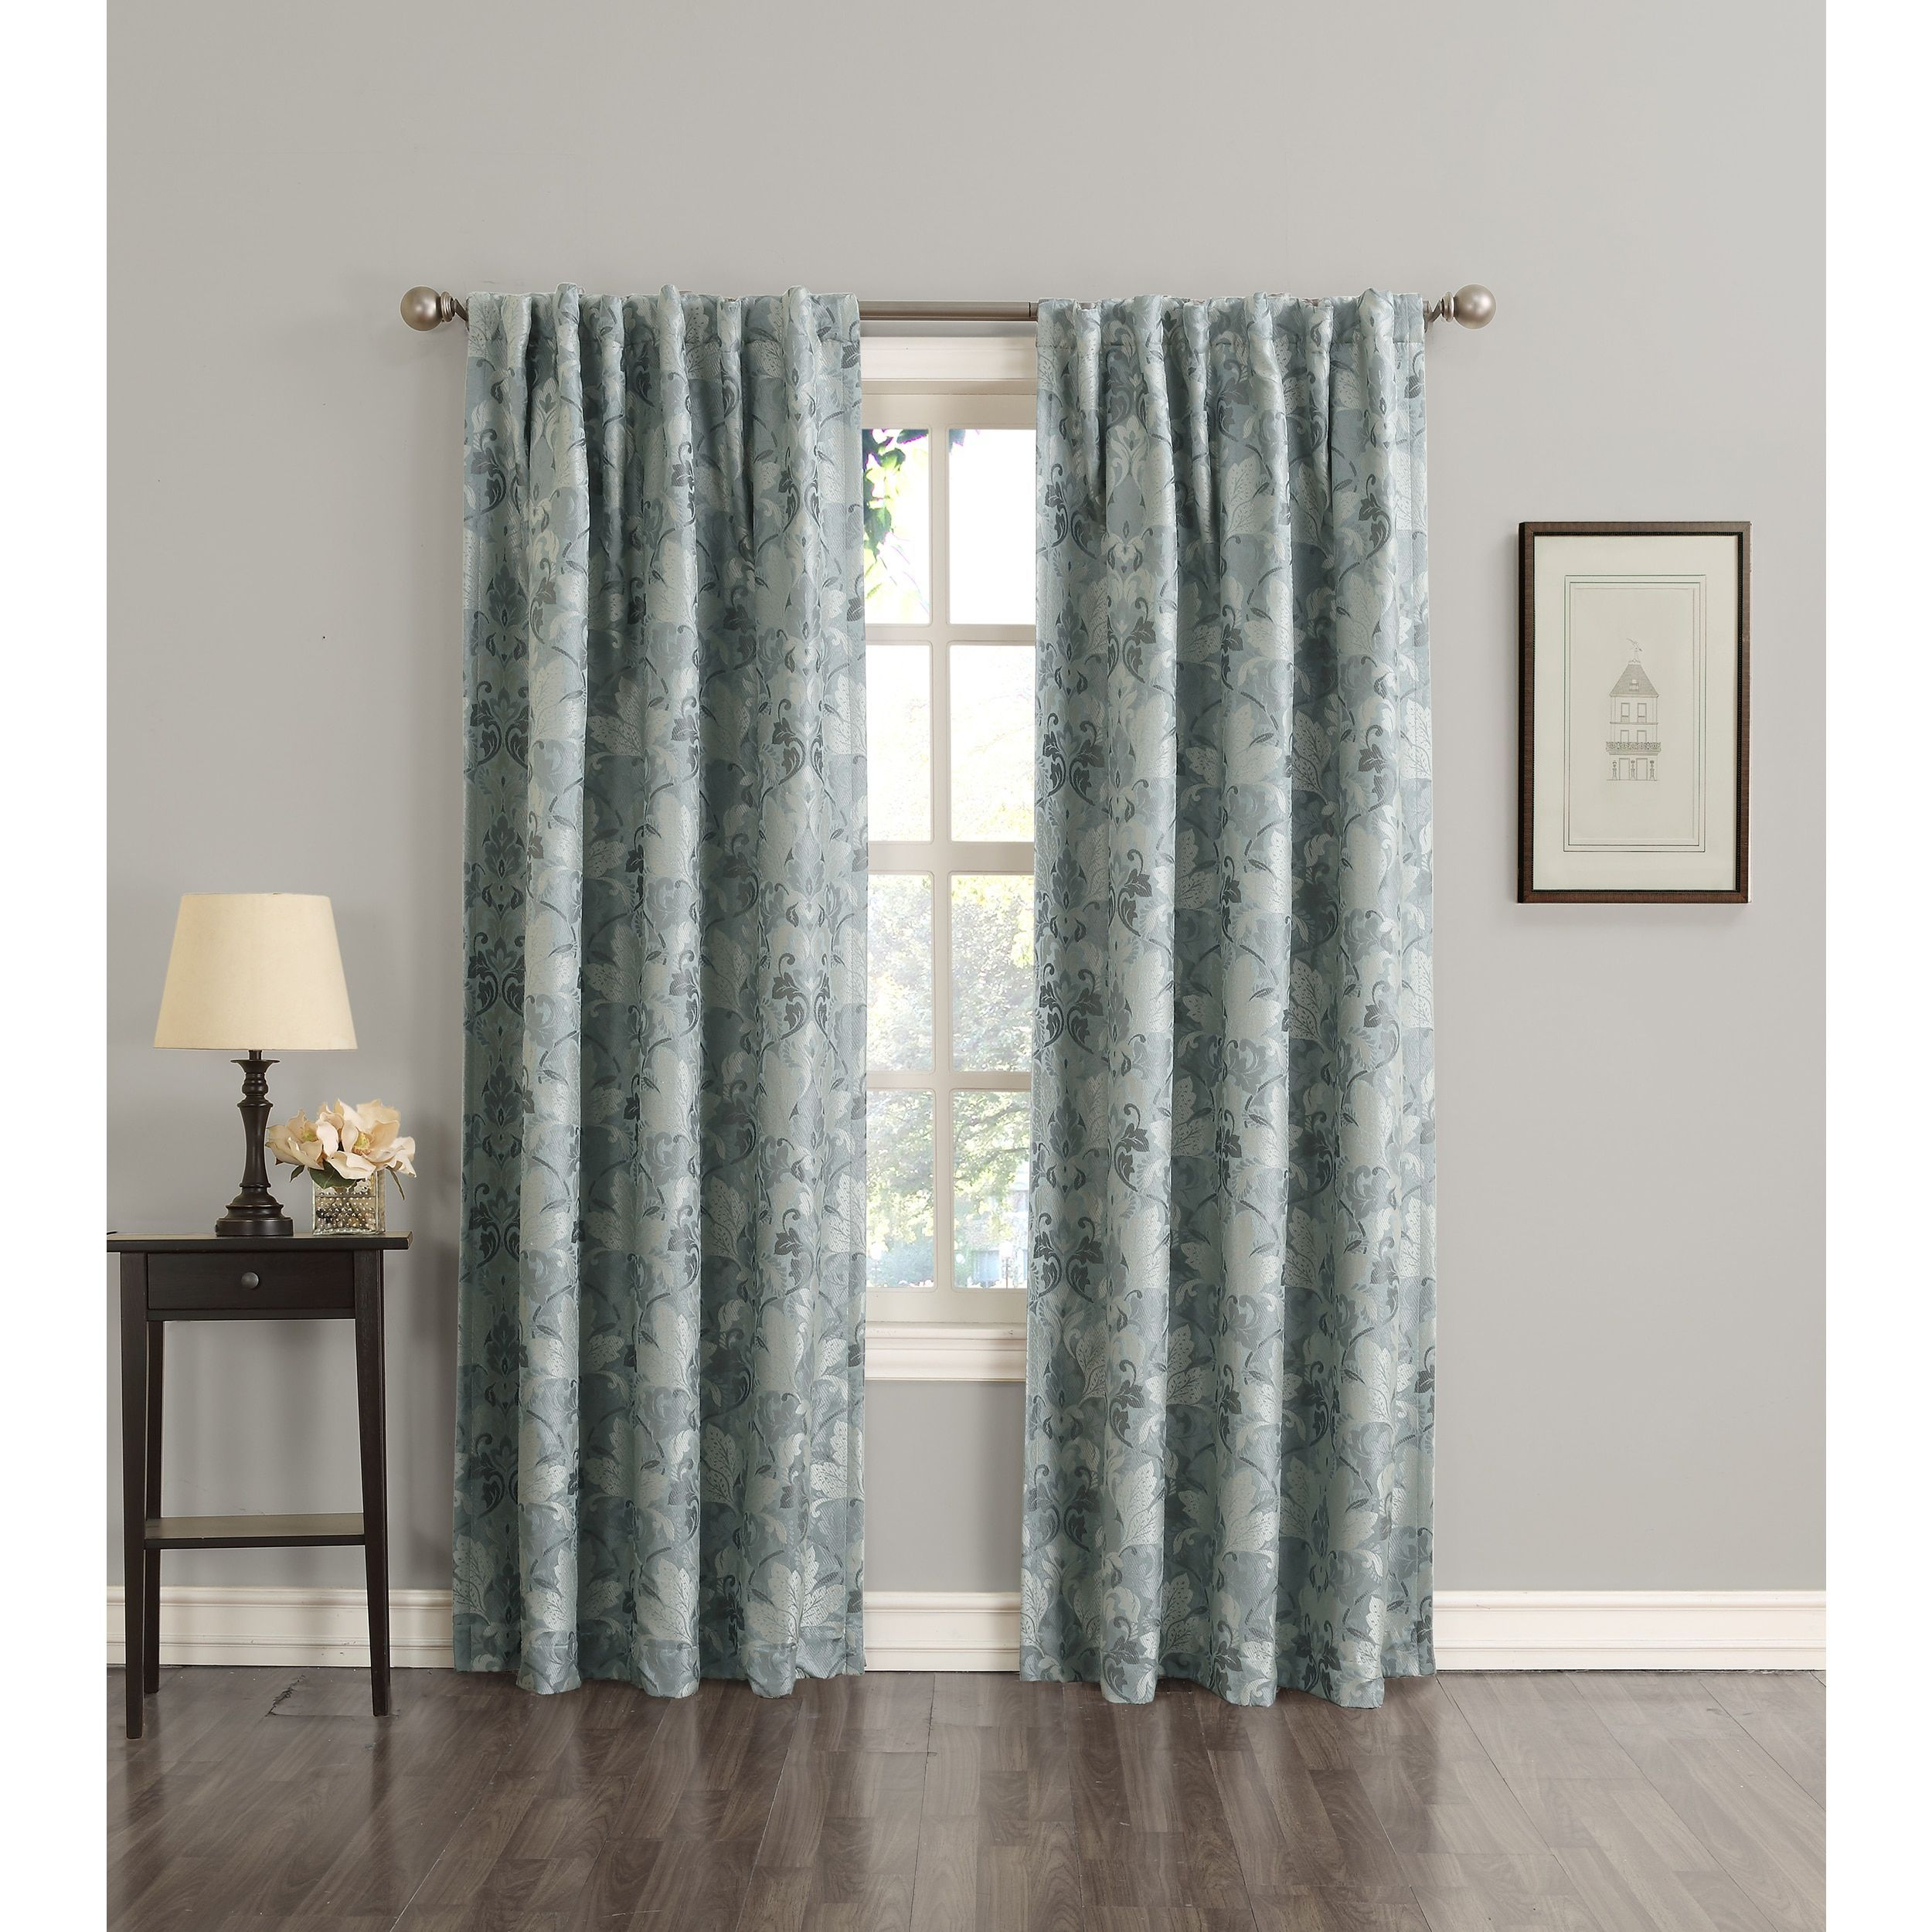 Sun Zero Mayfield Woven Floral Energy Efficient Blackout Back Tab Curtain Panel 63 Inches